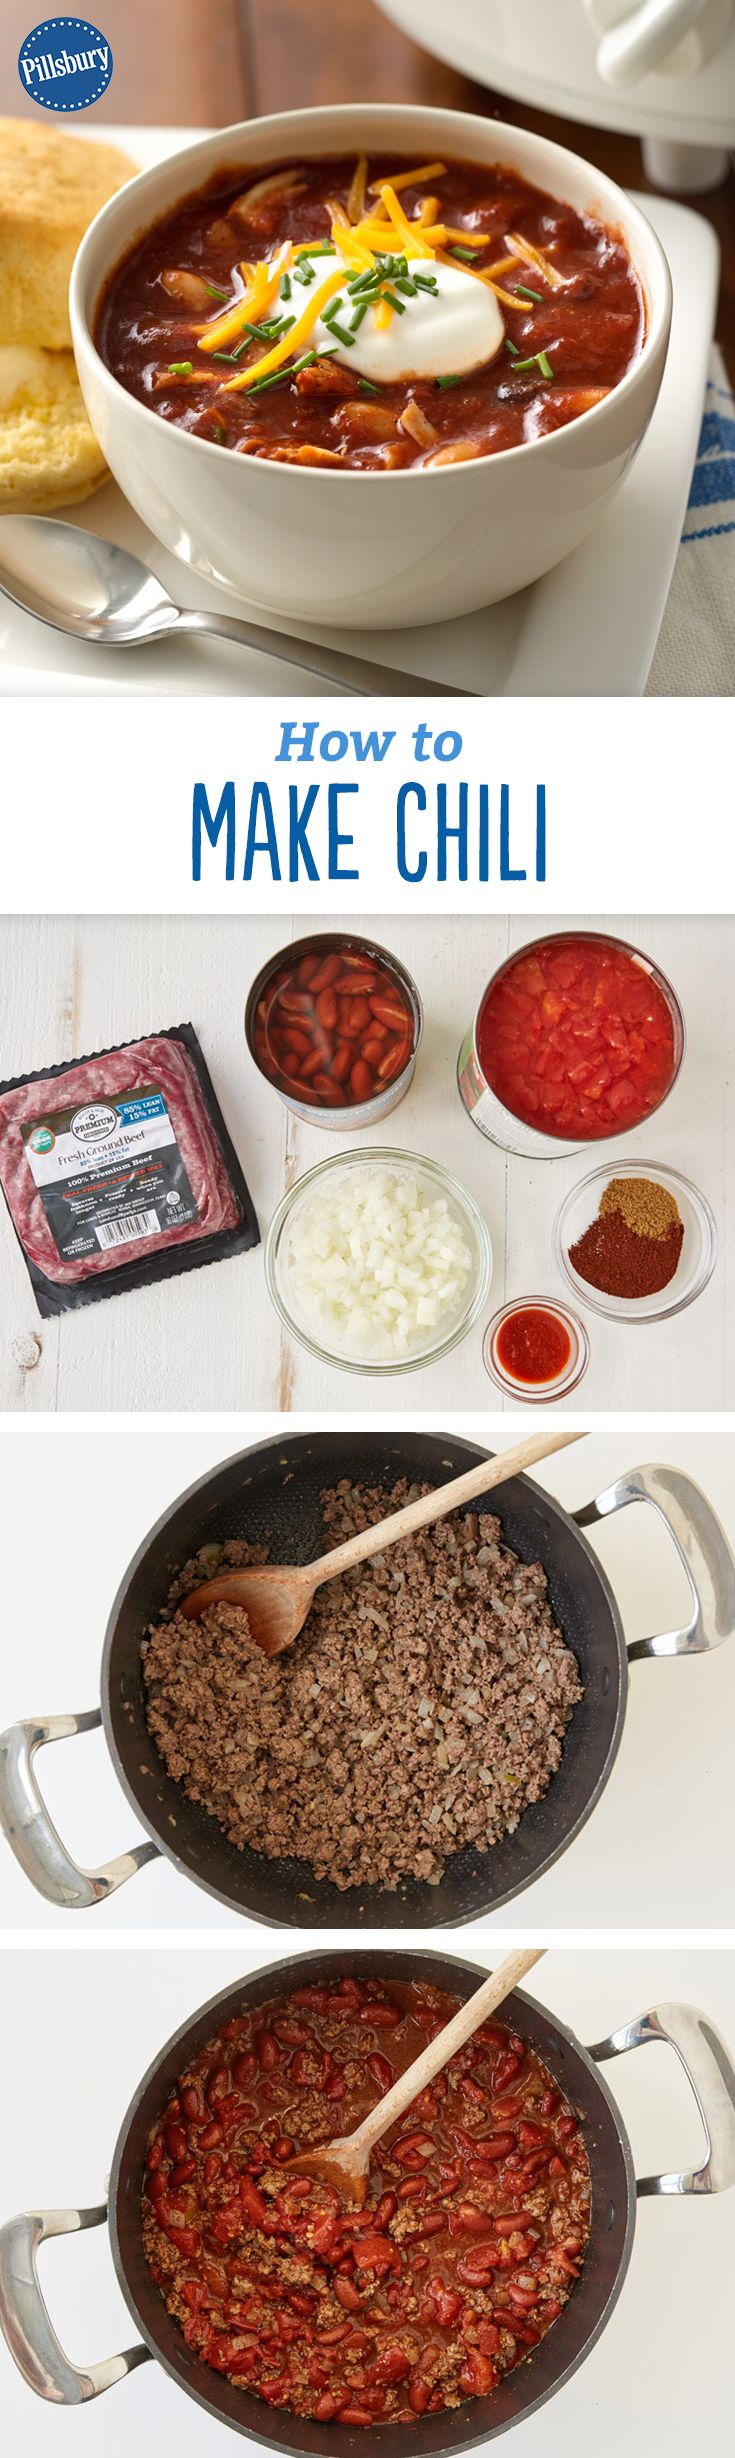 How to Make Chili: Everything you need to know about a good bowl of chili is right here.